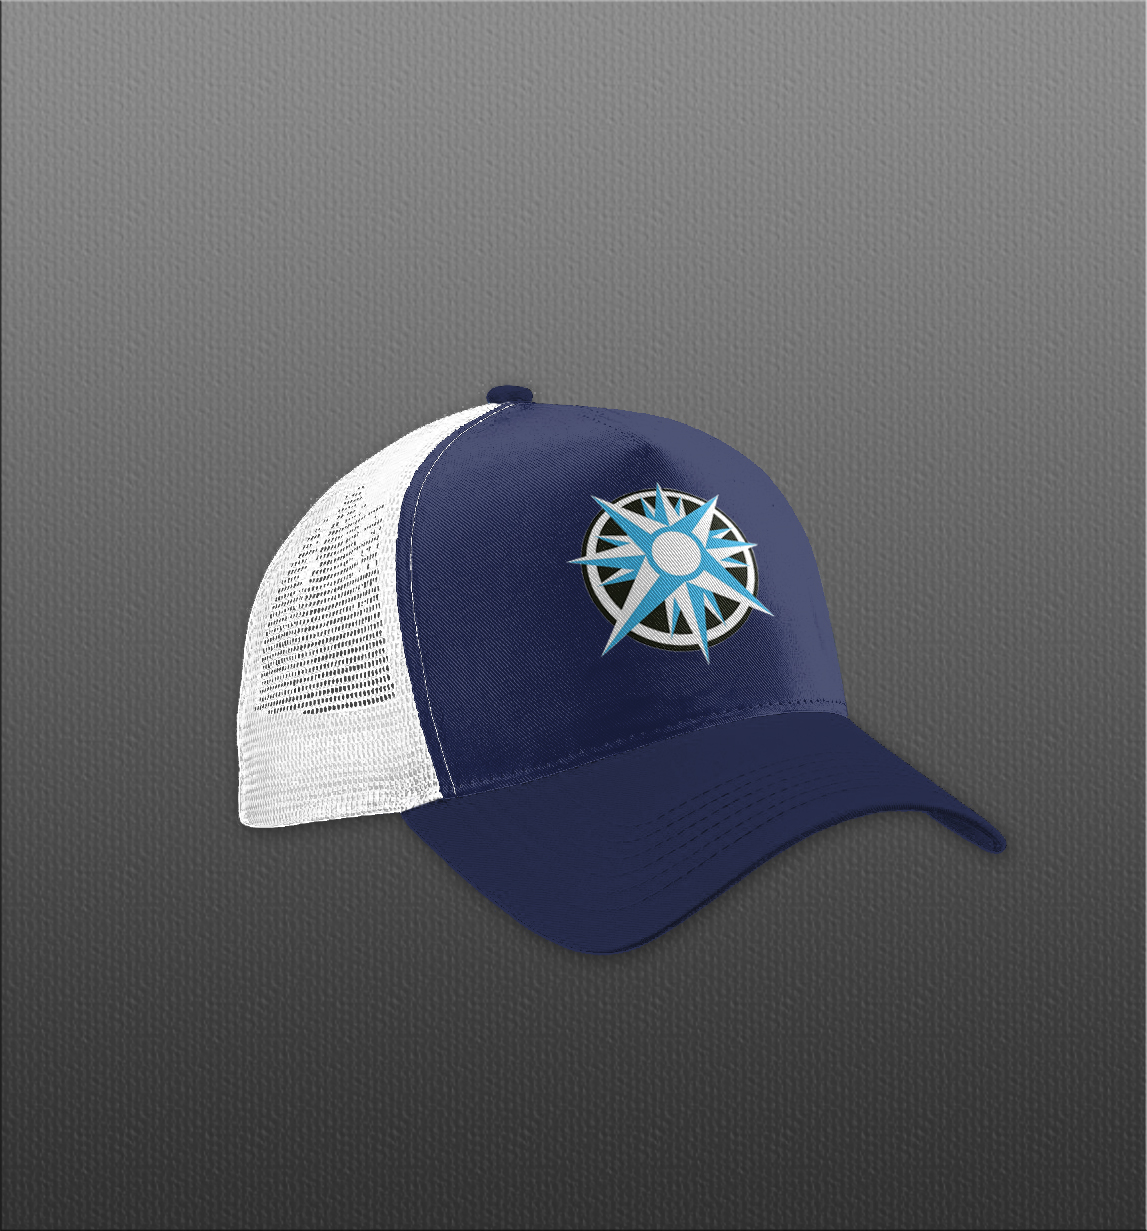 harnessing the power of the subconscious mind by wearing an official manifest it hat